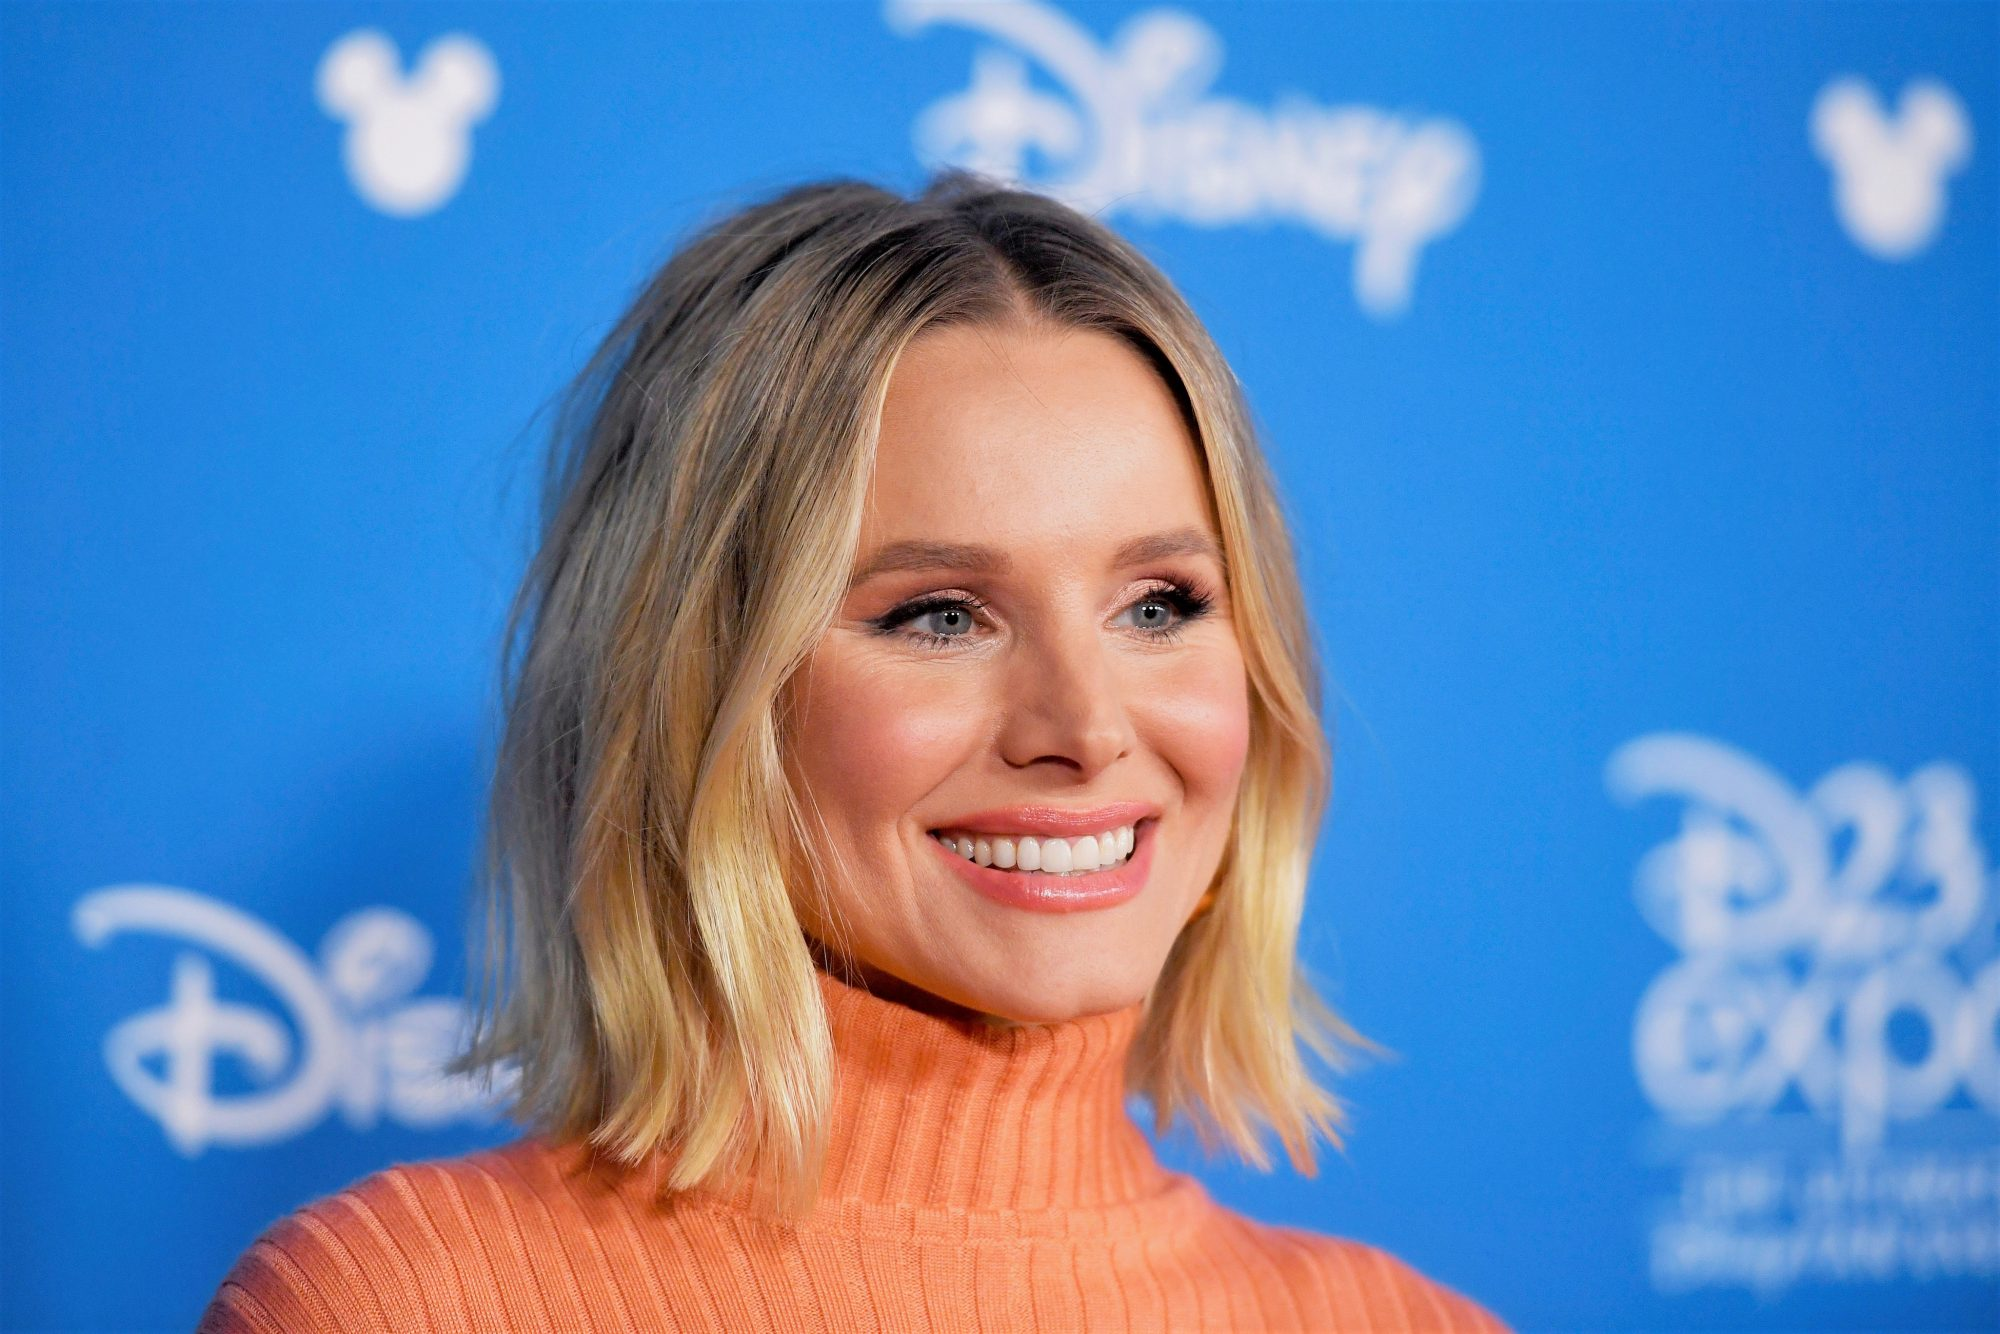 Kristen Bell in Turtleneck at D23 Expo 2019